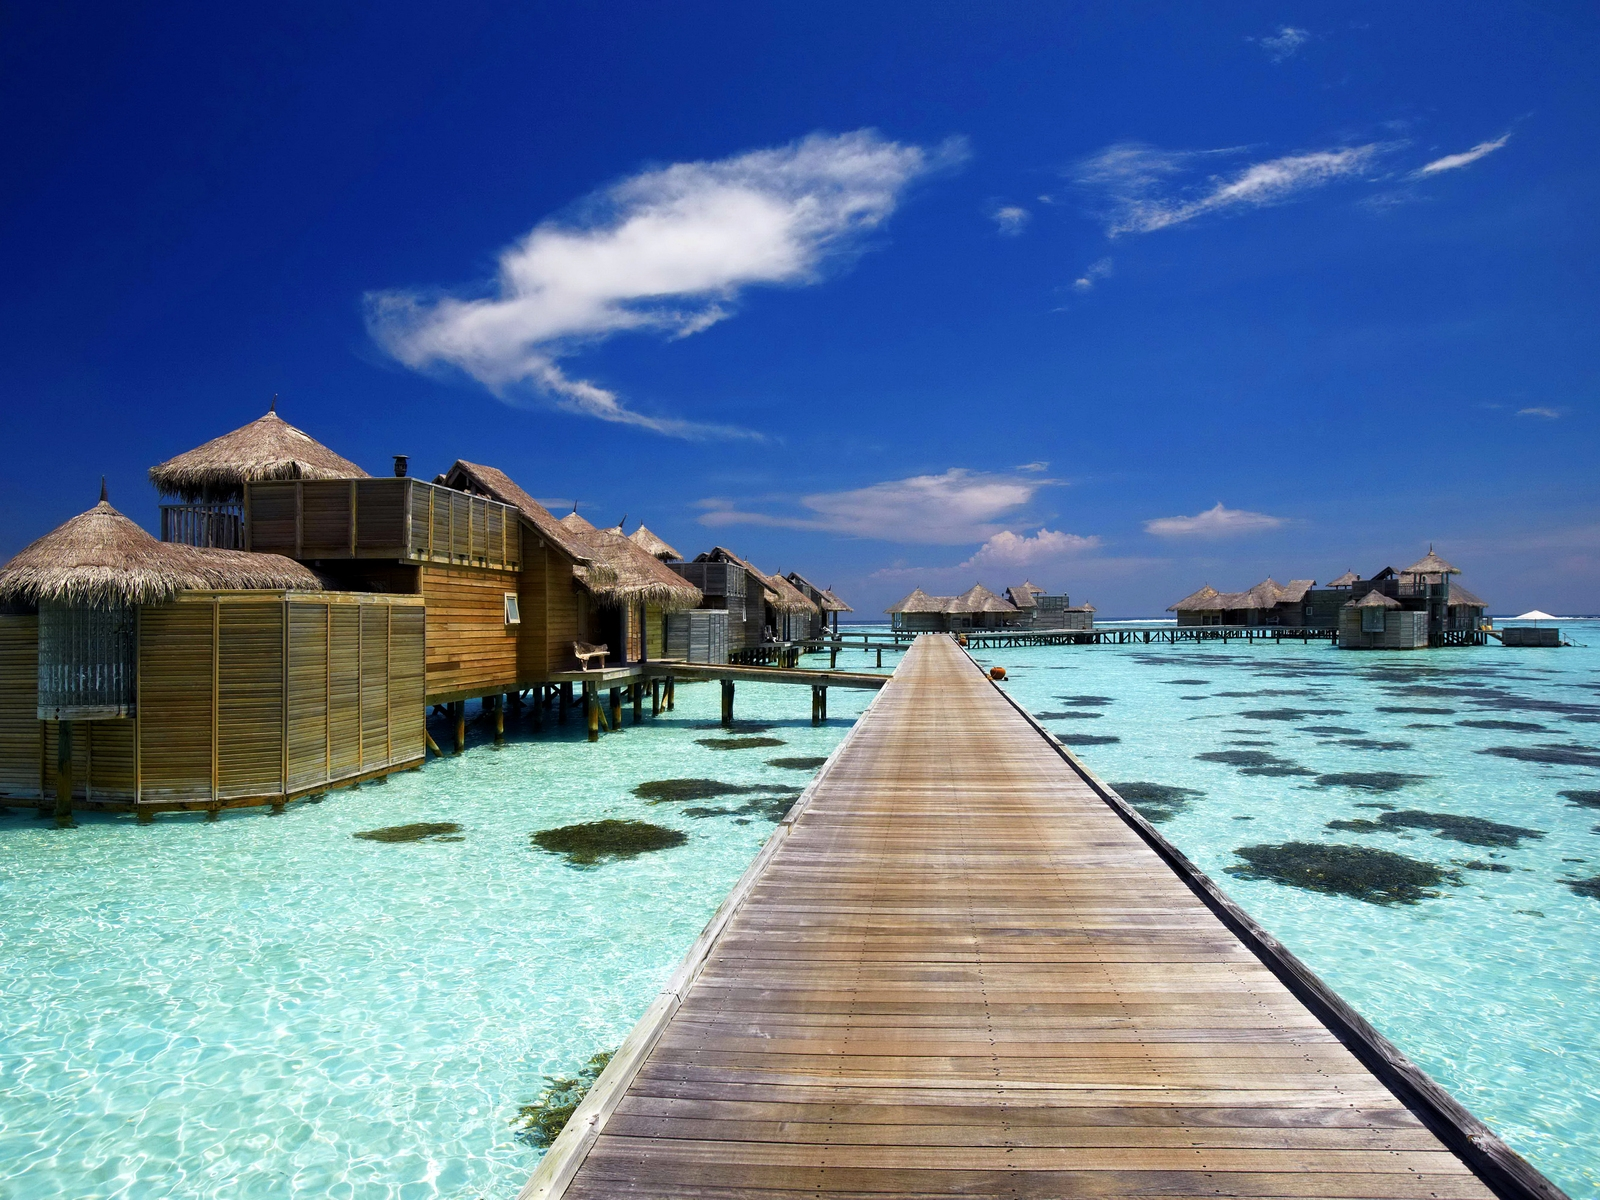 Luxury Resort in Maldives for 1600 x 1200 resolution